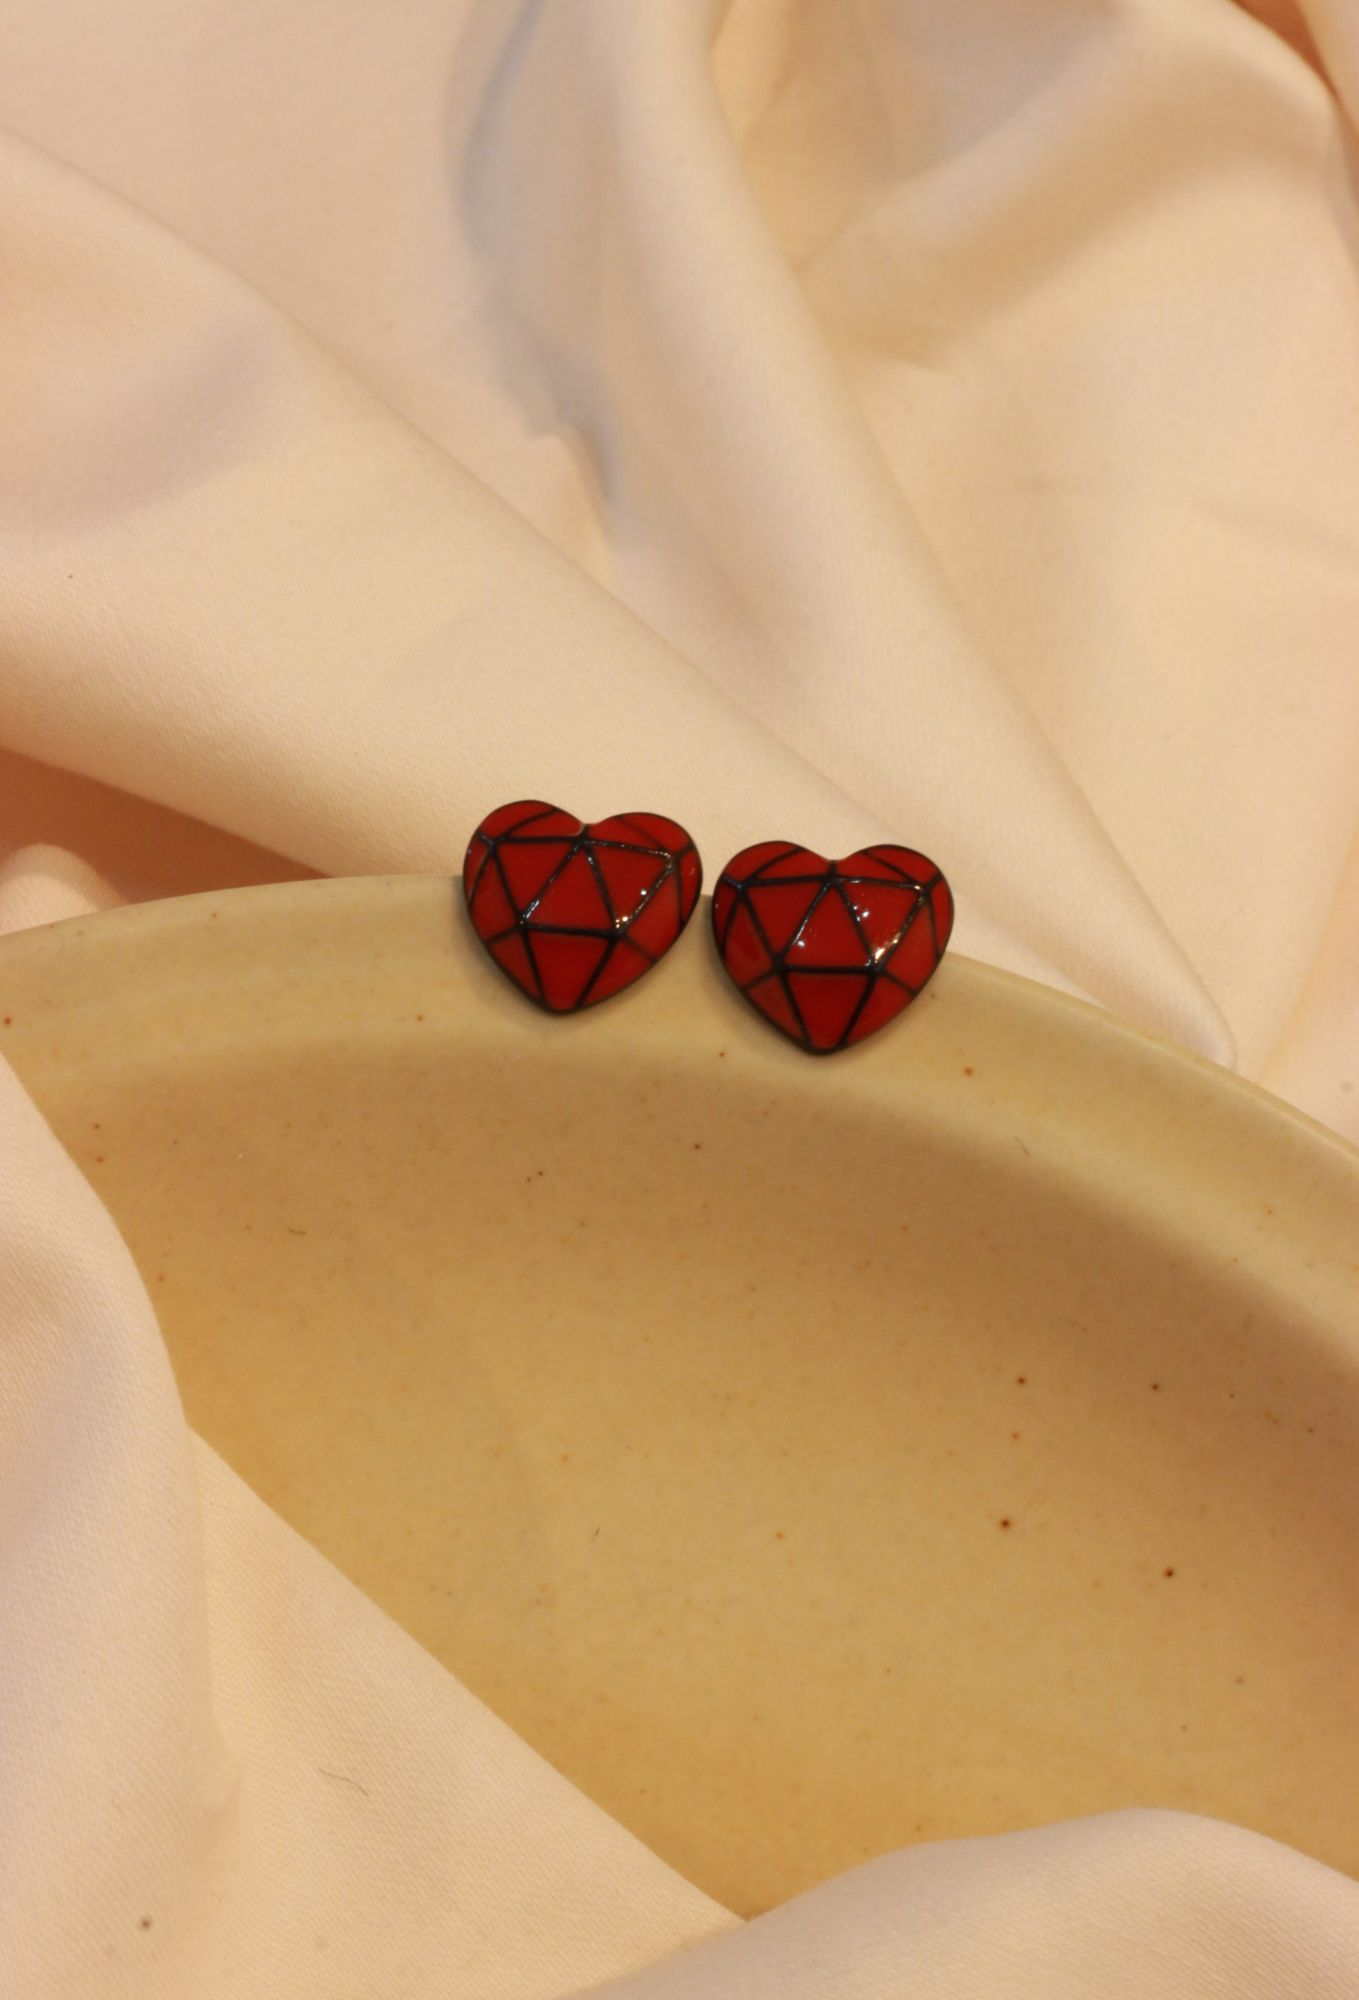 Heart Shaped Stud EarRings